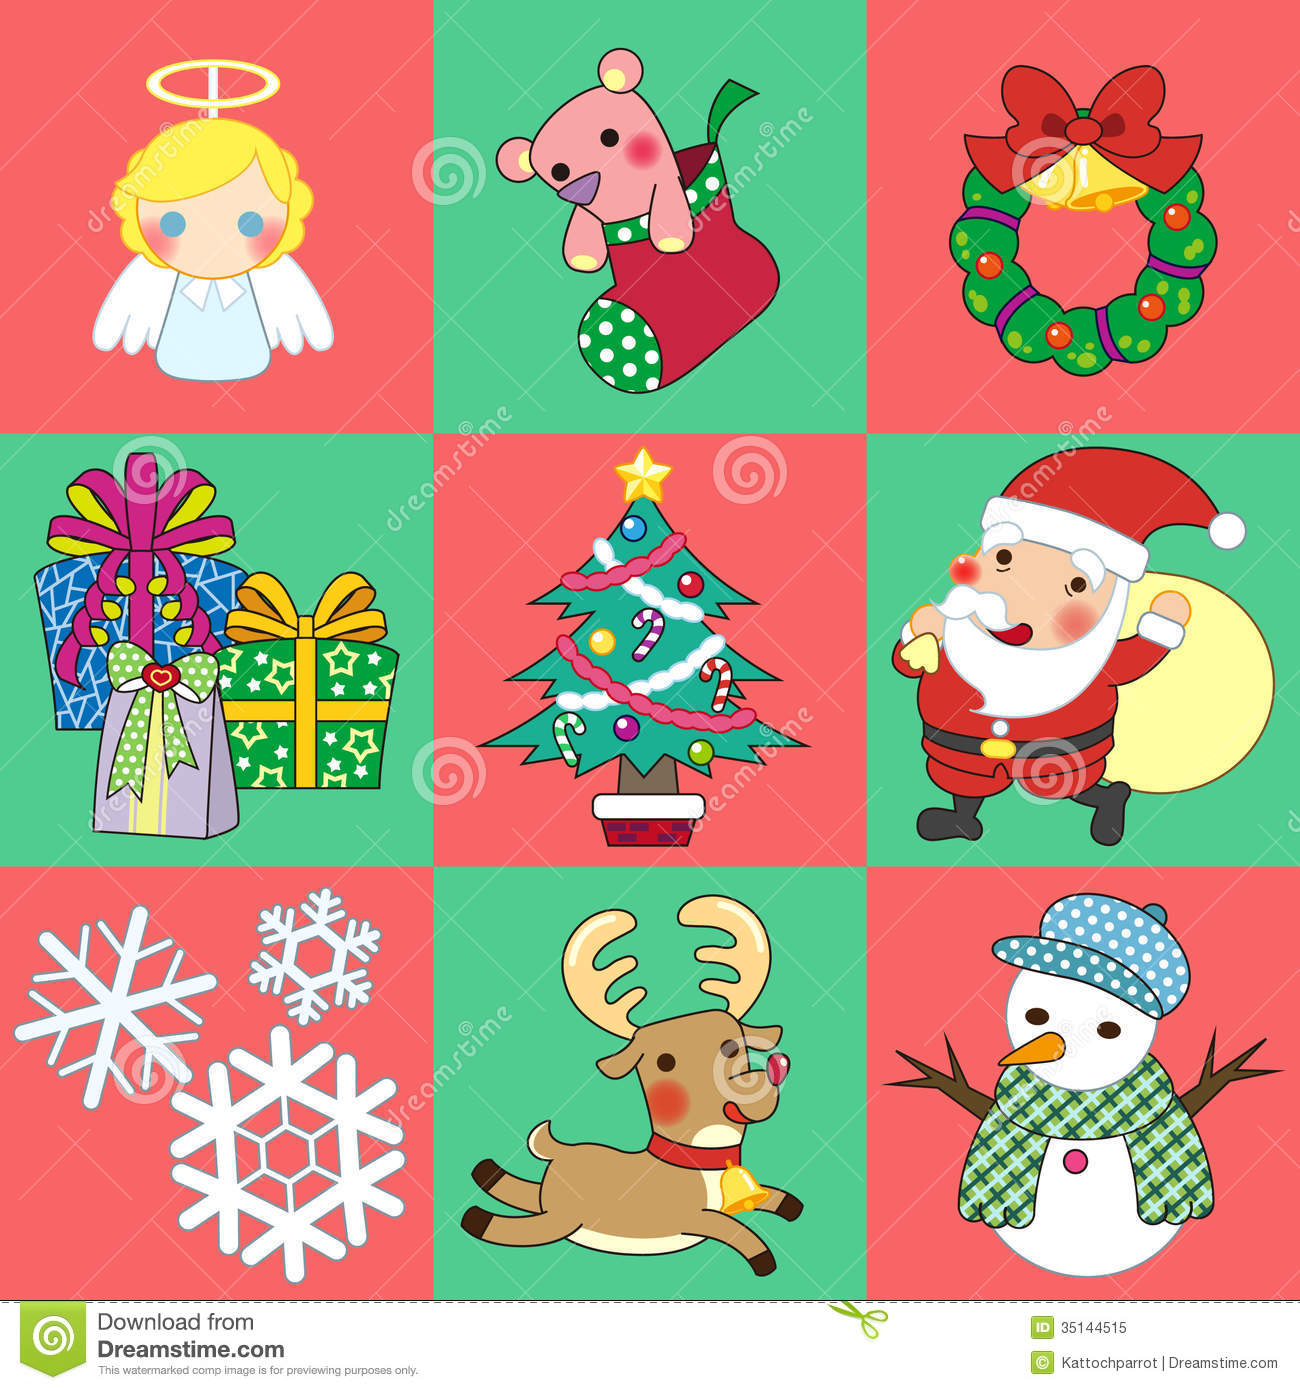 Free Vector Illustration Juniper: Christmas Stock Vector. Image Of Greeting, Claus